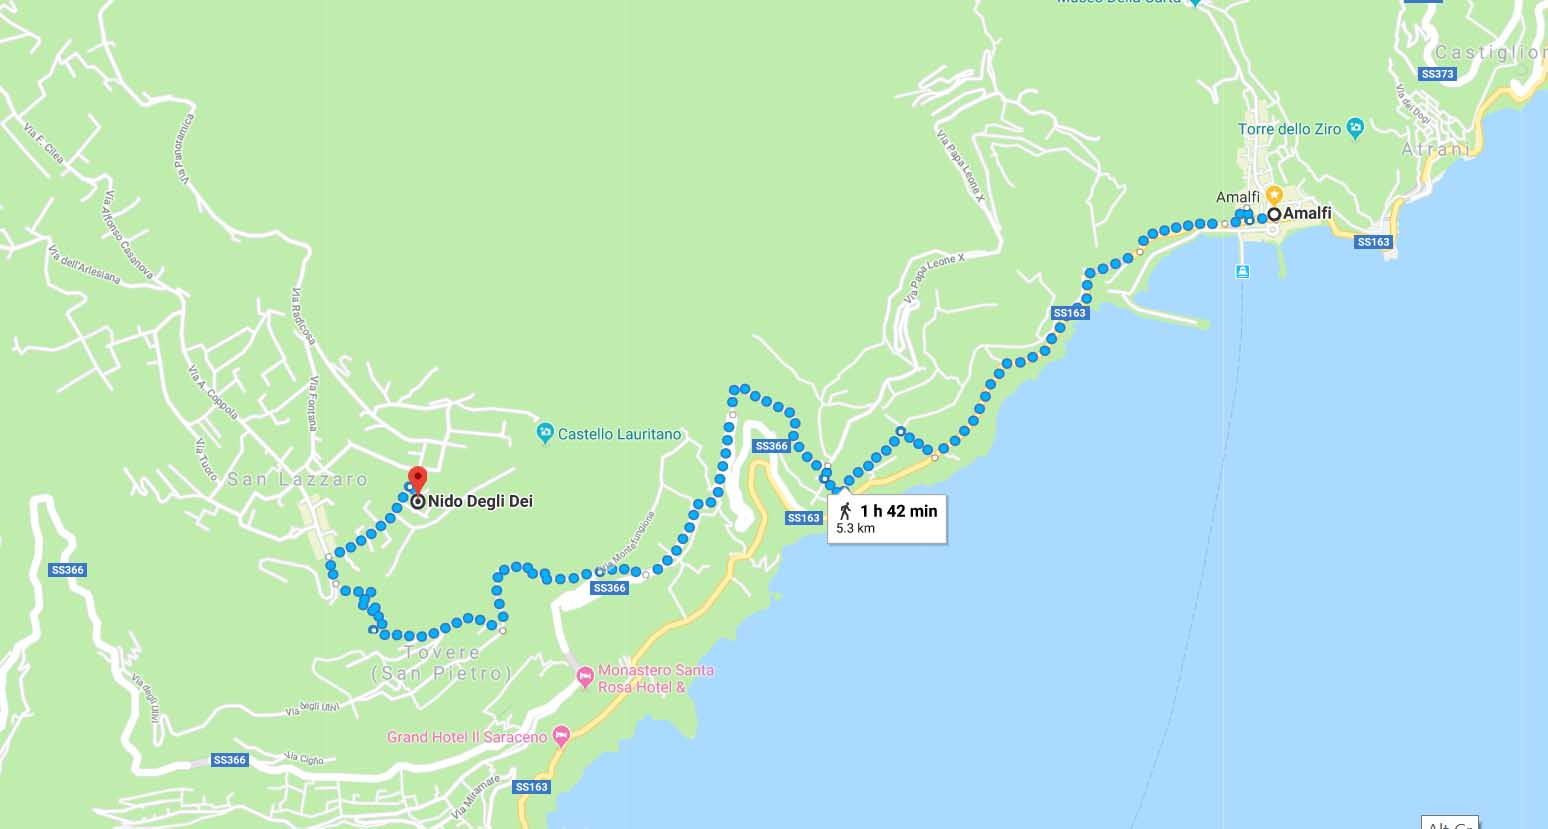 Trekking from San Lazzaro to Amalfi town